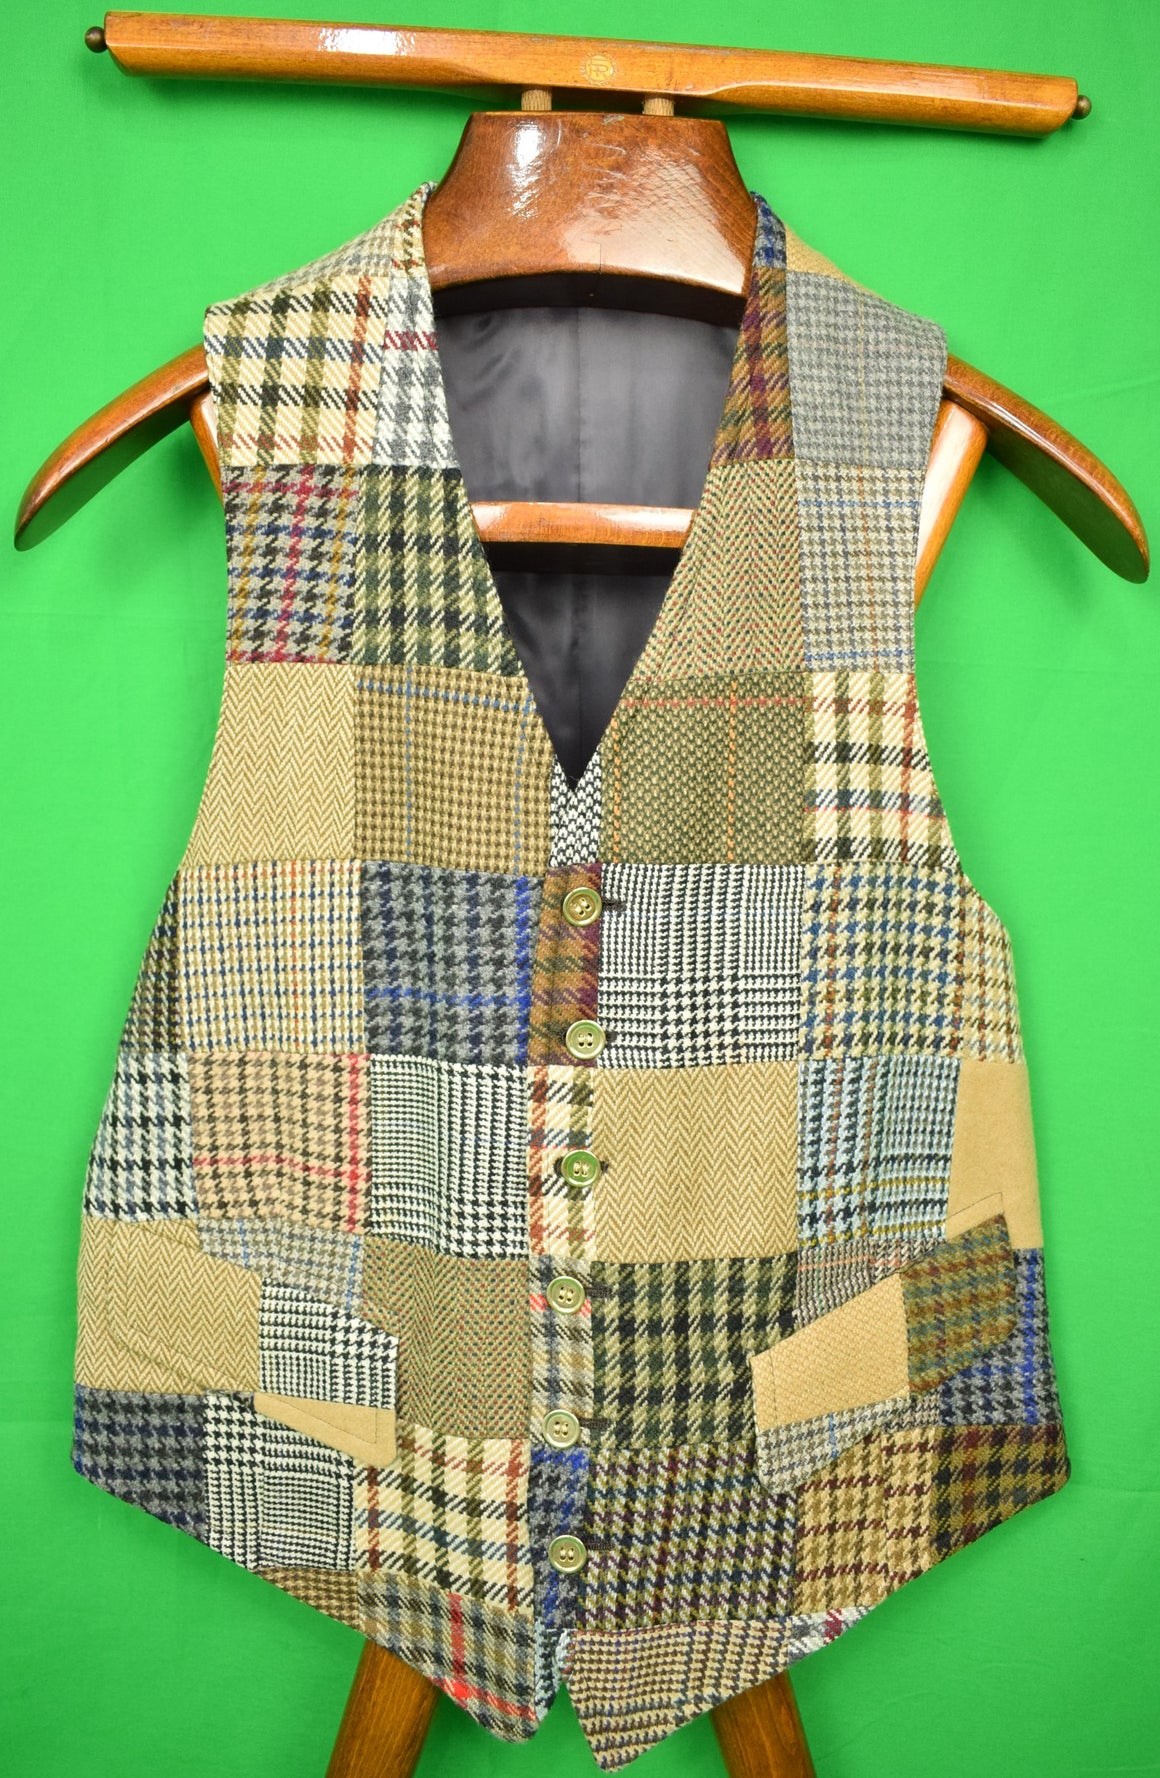 The Andover Shop c1991 Patch Cashmere Tweed Waistcoat Sz 38R